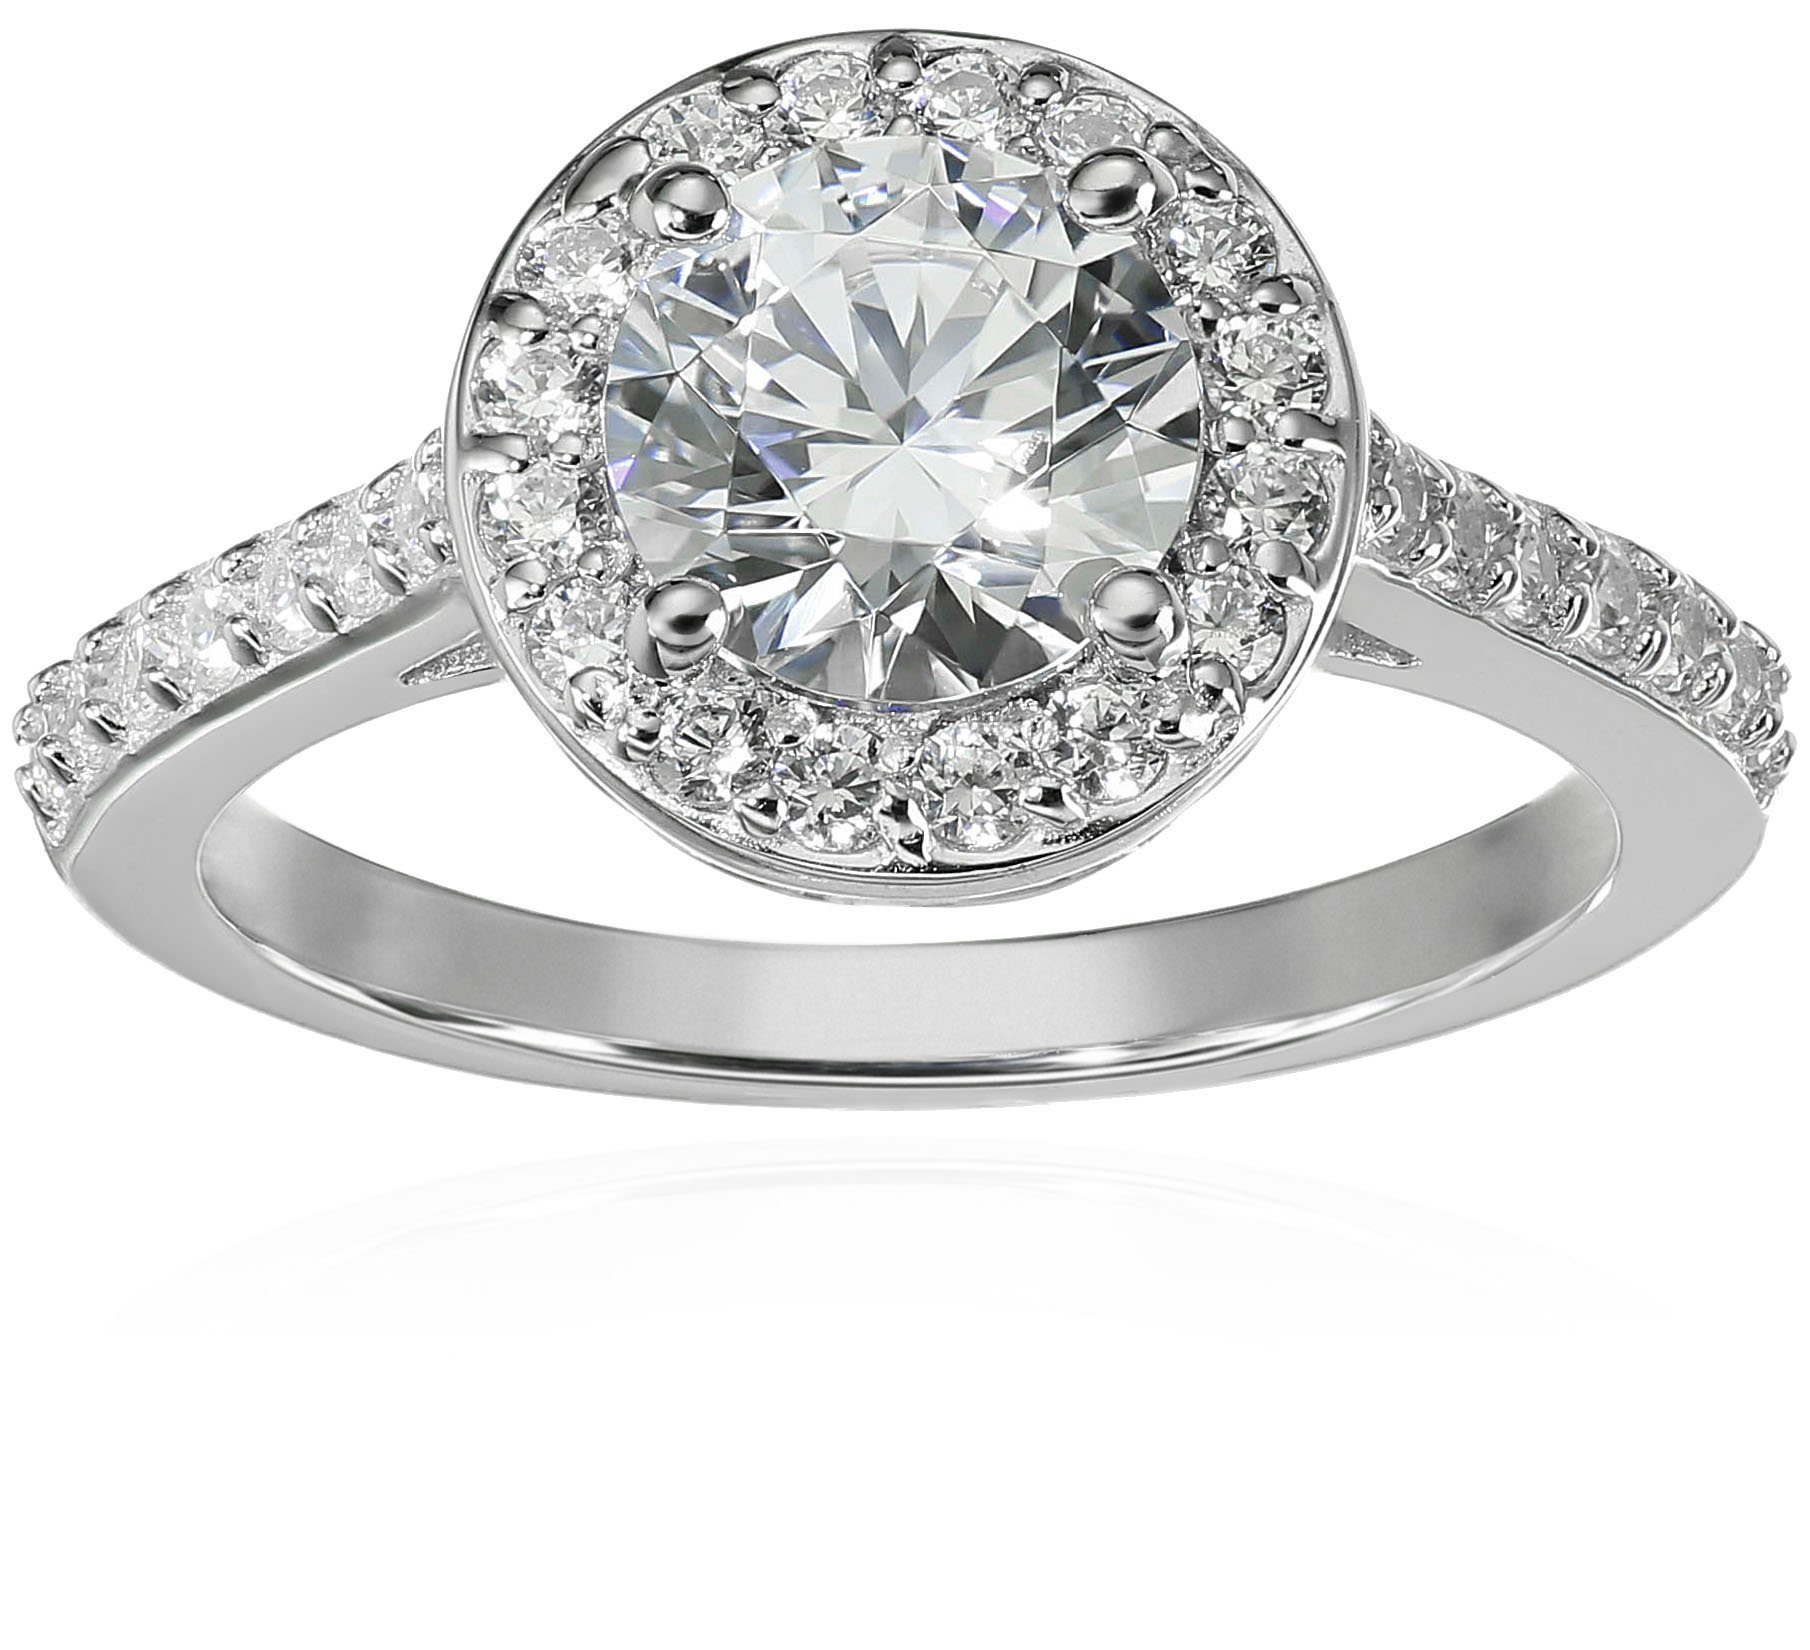 Platinum-Plated Sterling Silver Round-Cut Halo Ring made with Swarovski Zirconia, Size 7 by Amazon Collection